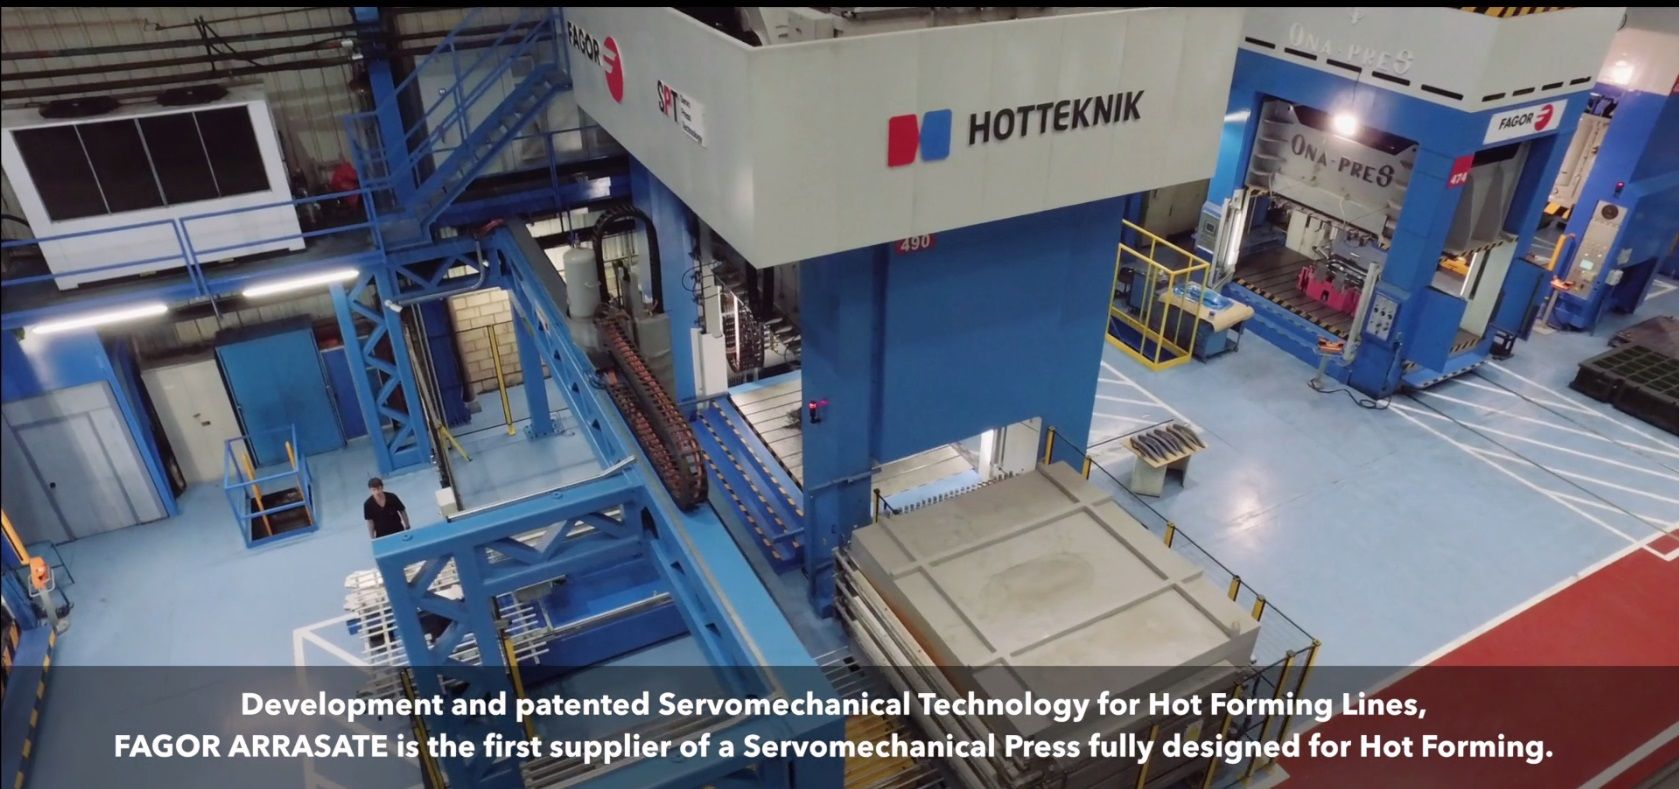 Fagor Arrasate event: NEW video on FAGOR ARRASATE's YOUTUBE channel: A Servomechanical Press designed for Hot Stamping